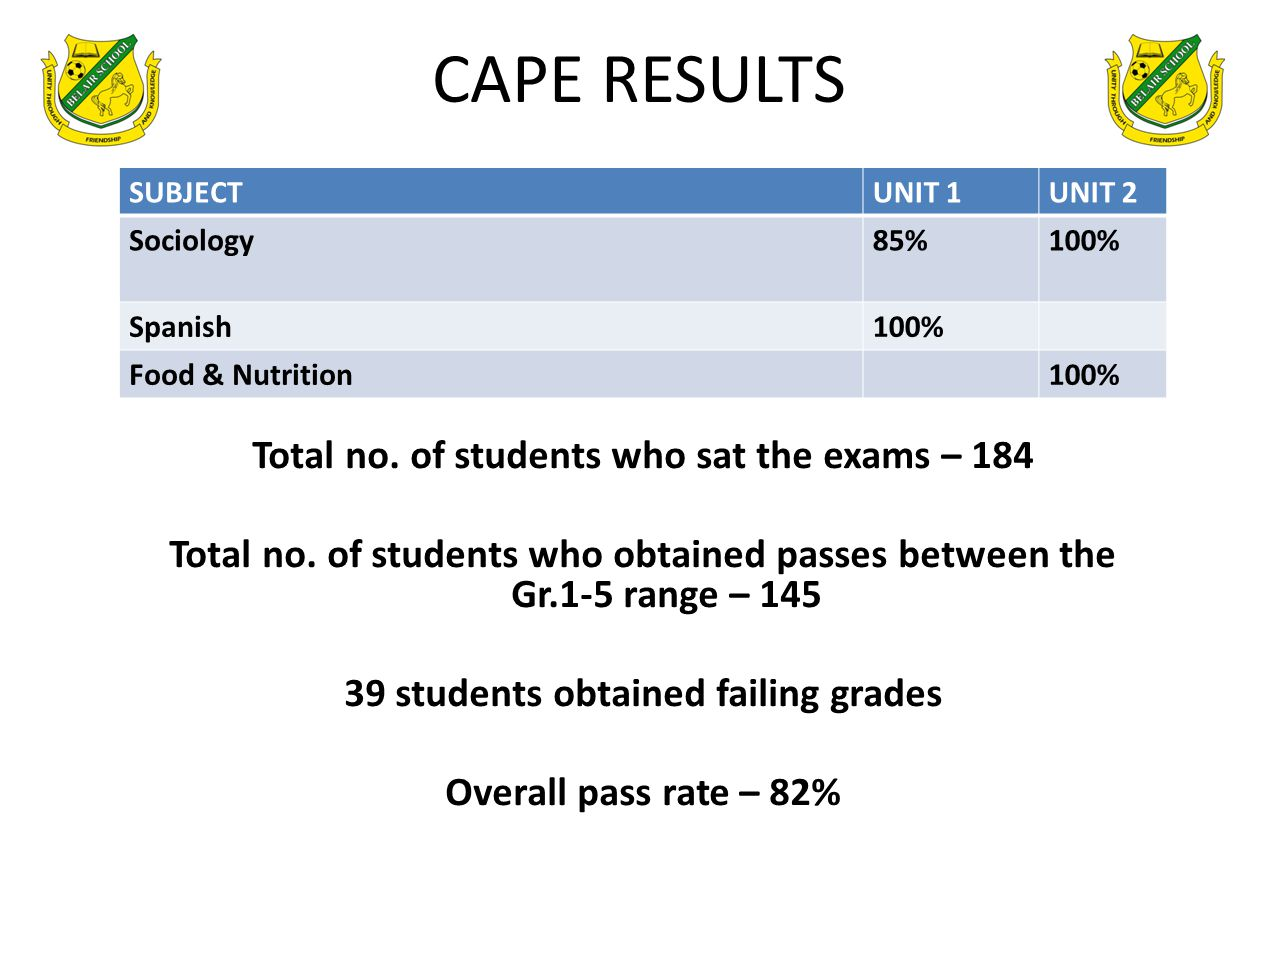 CAPE RESULTS Total no. of students who sat the exams – 184